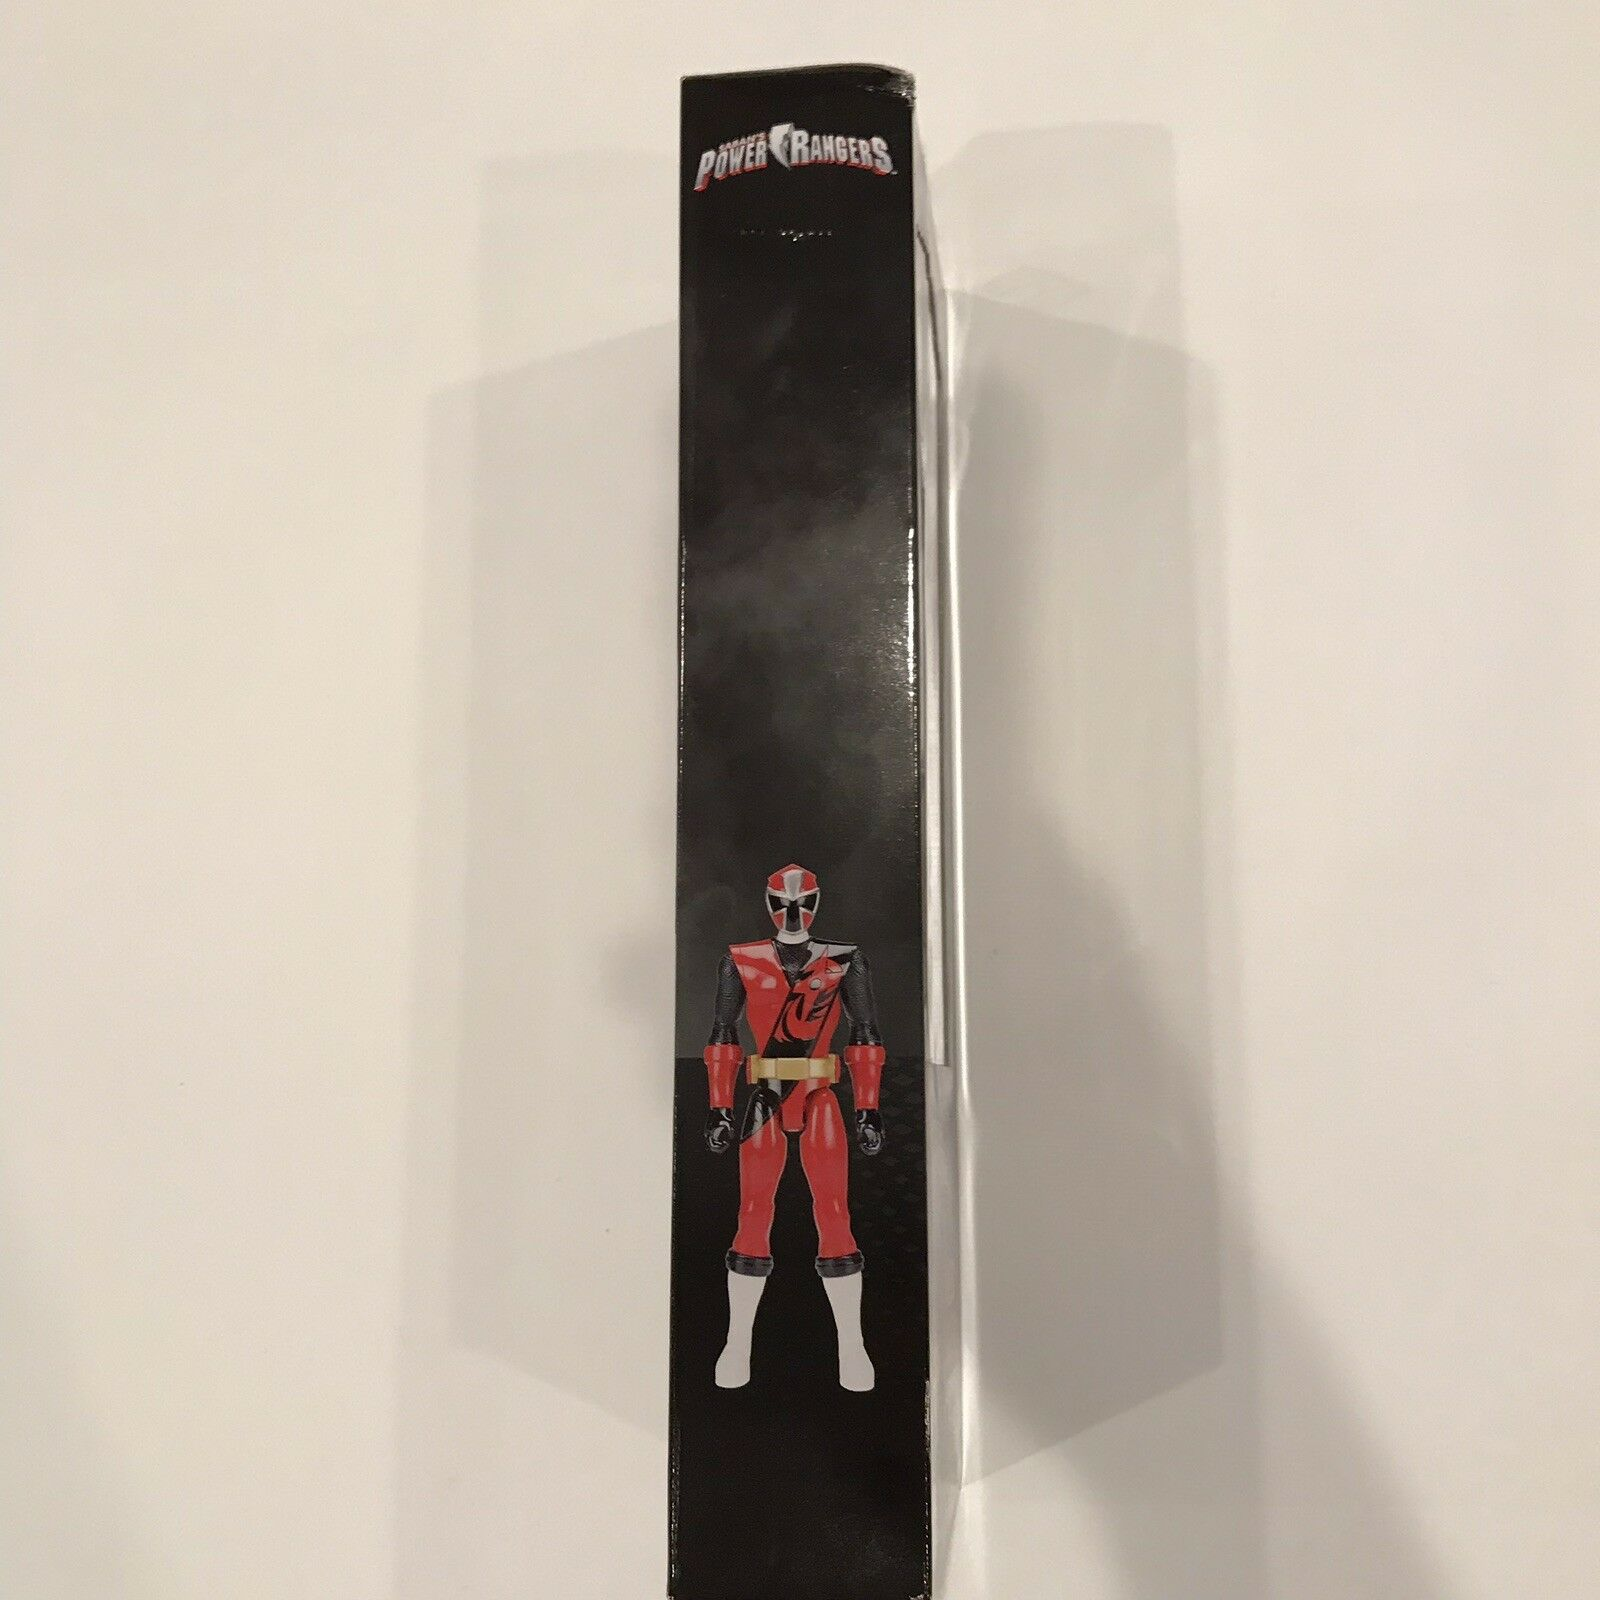 Power Rangers Super Ninja Steel Steel Steel 12-inch Action Figure, Red Ranger New In Box 10112e